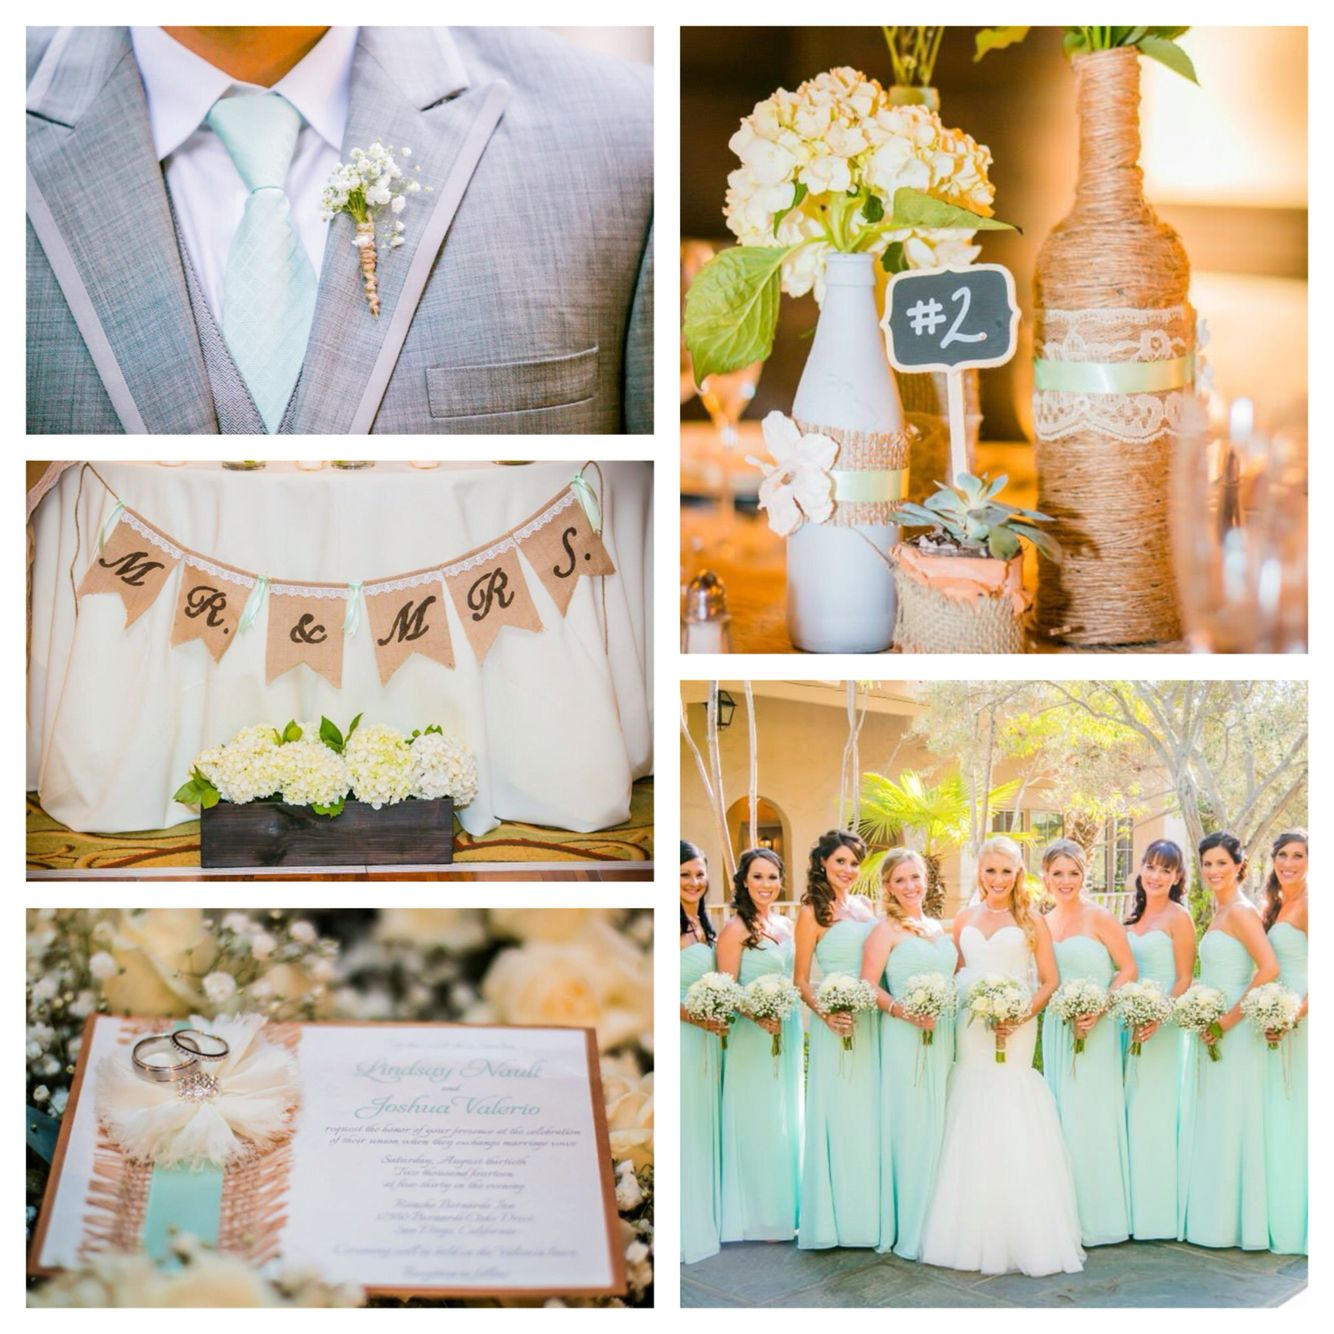 Mint Green And Grey With Burlap/twine Accents Wedding. In